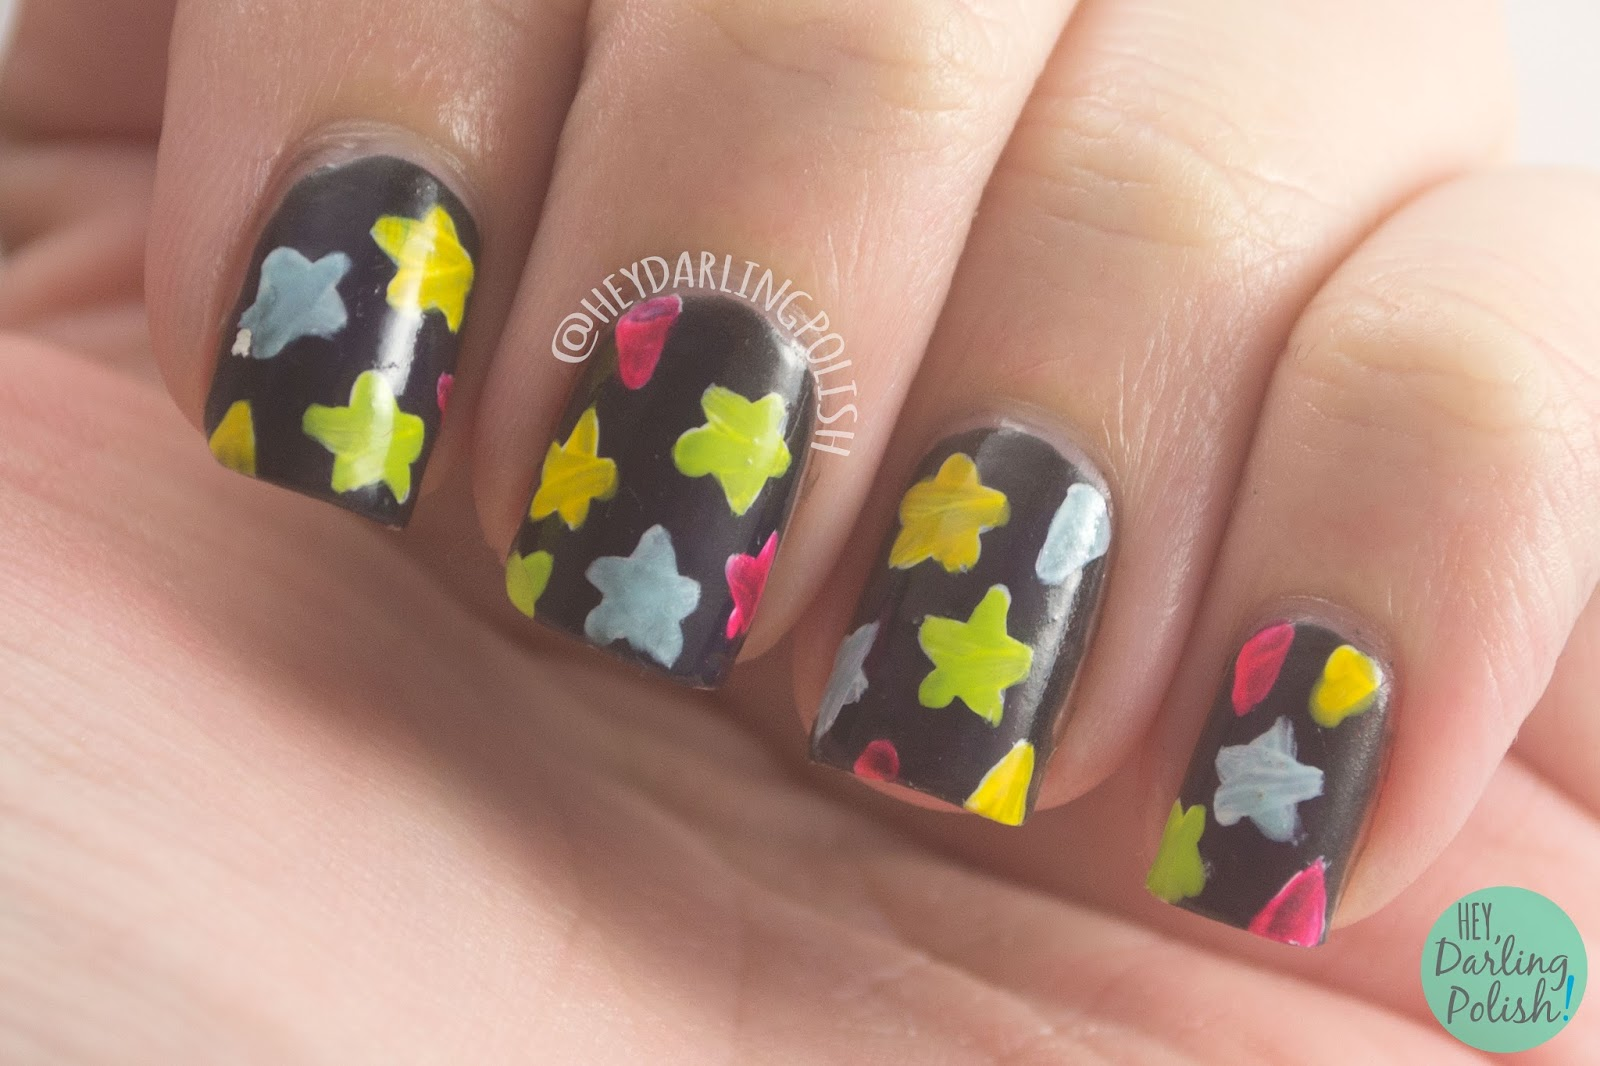 nails, nail art, nail polish, stars, 80s, hey darling polish, pattern, 52 week challenge